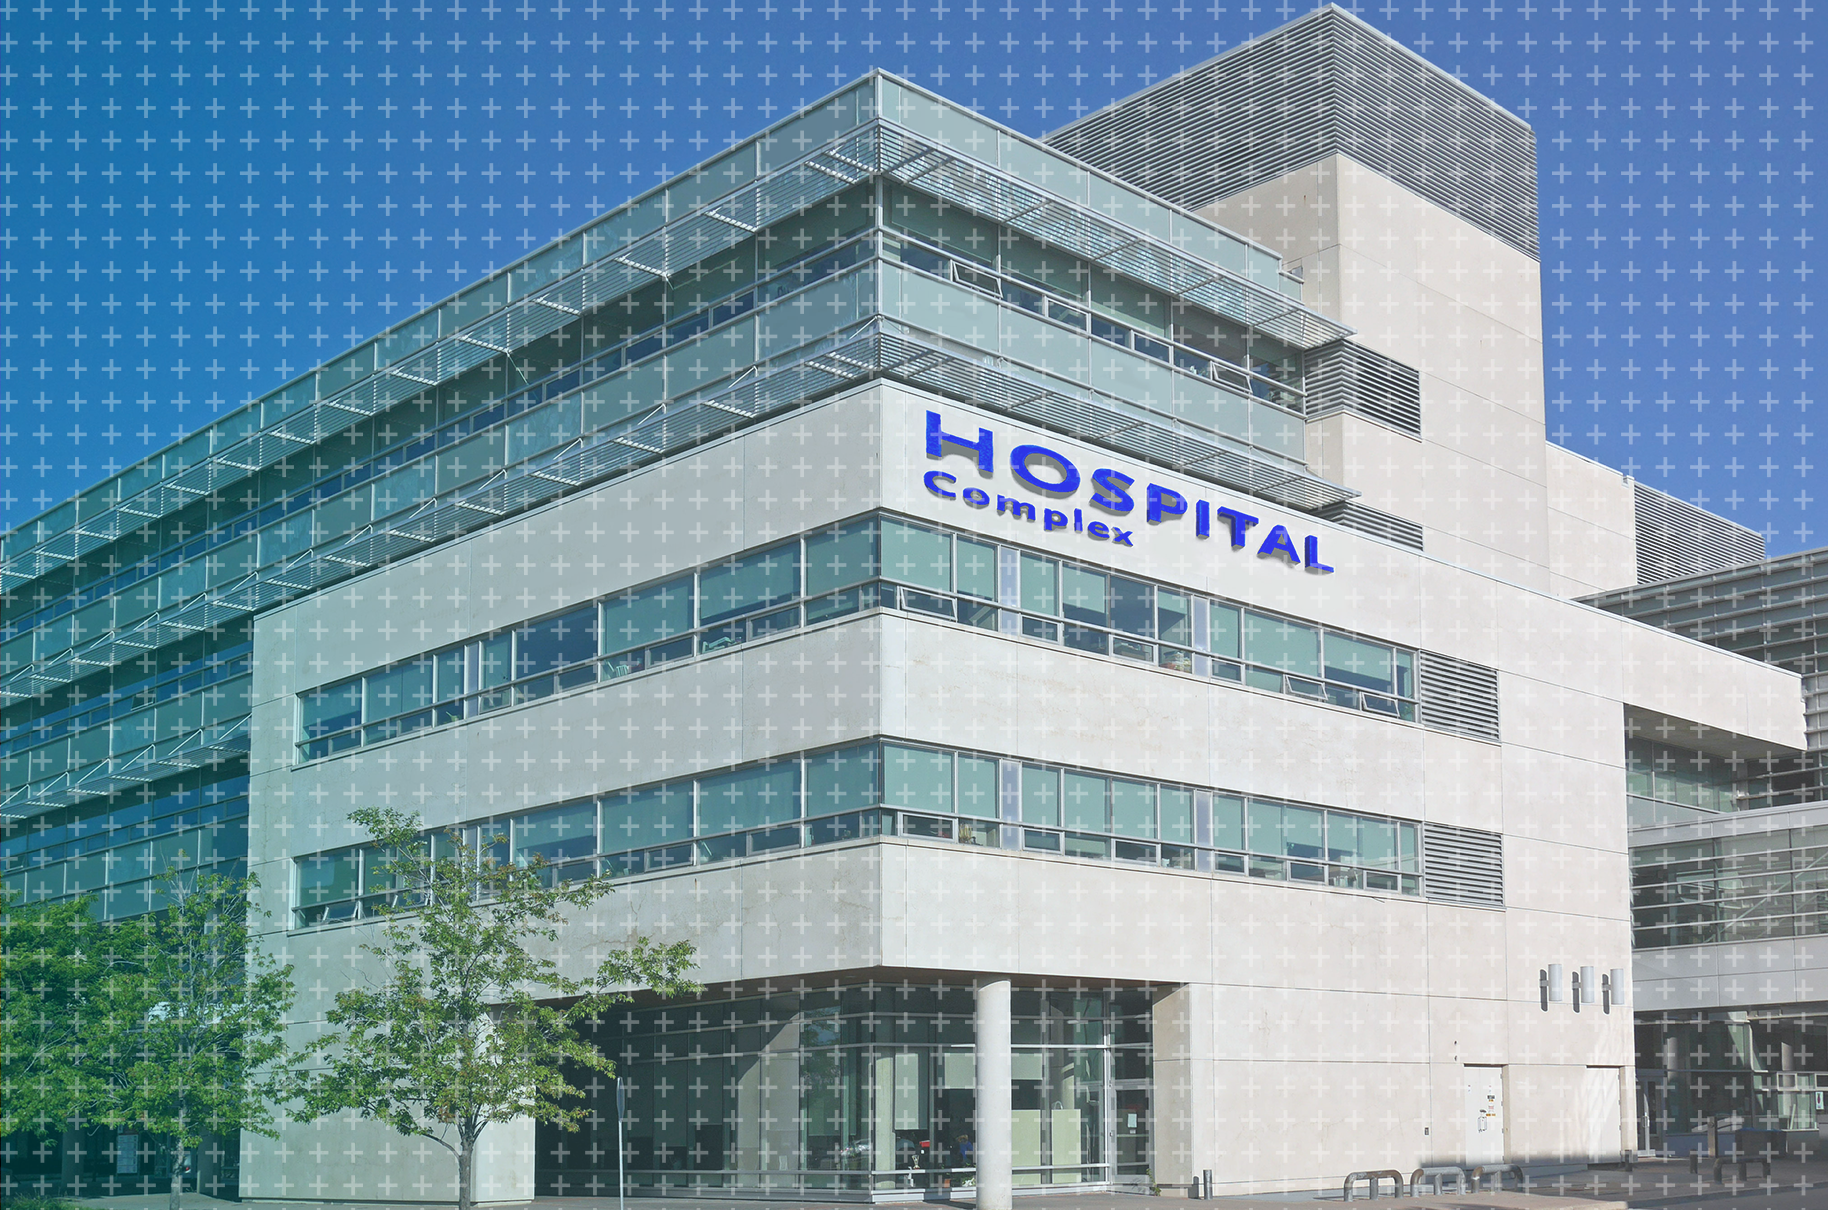 CMS Hospital Pricing Transparency